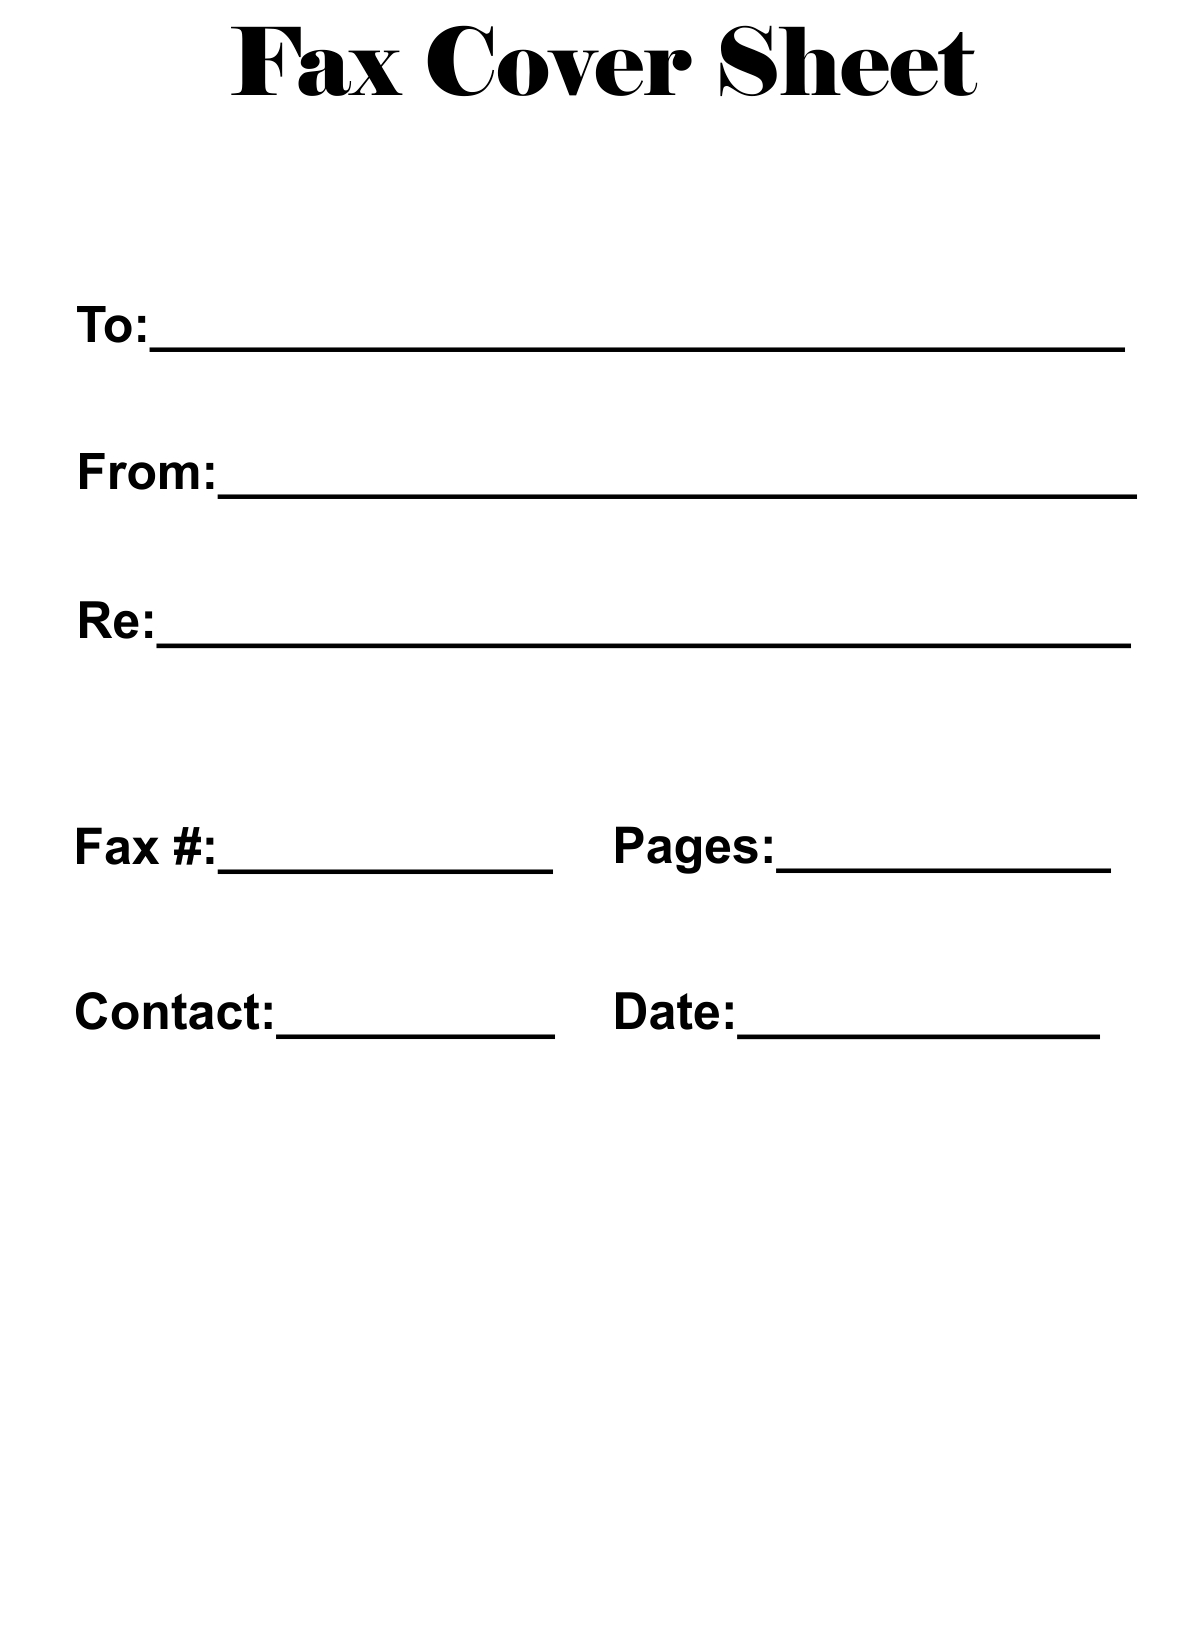 Fancy Fax Cover Sheet Template